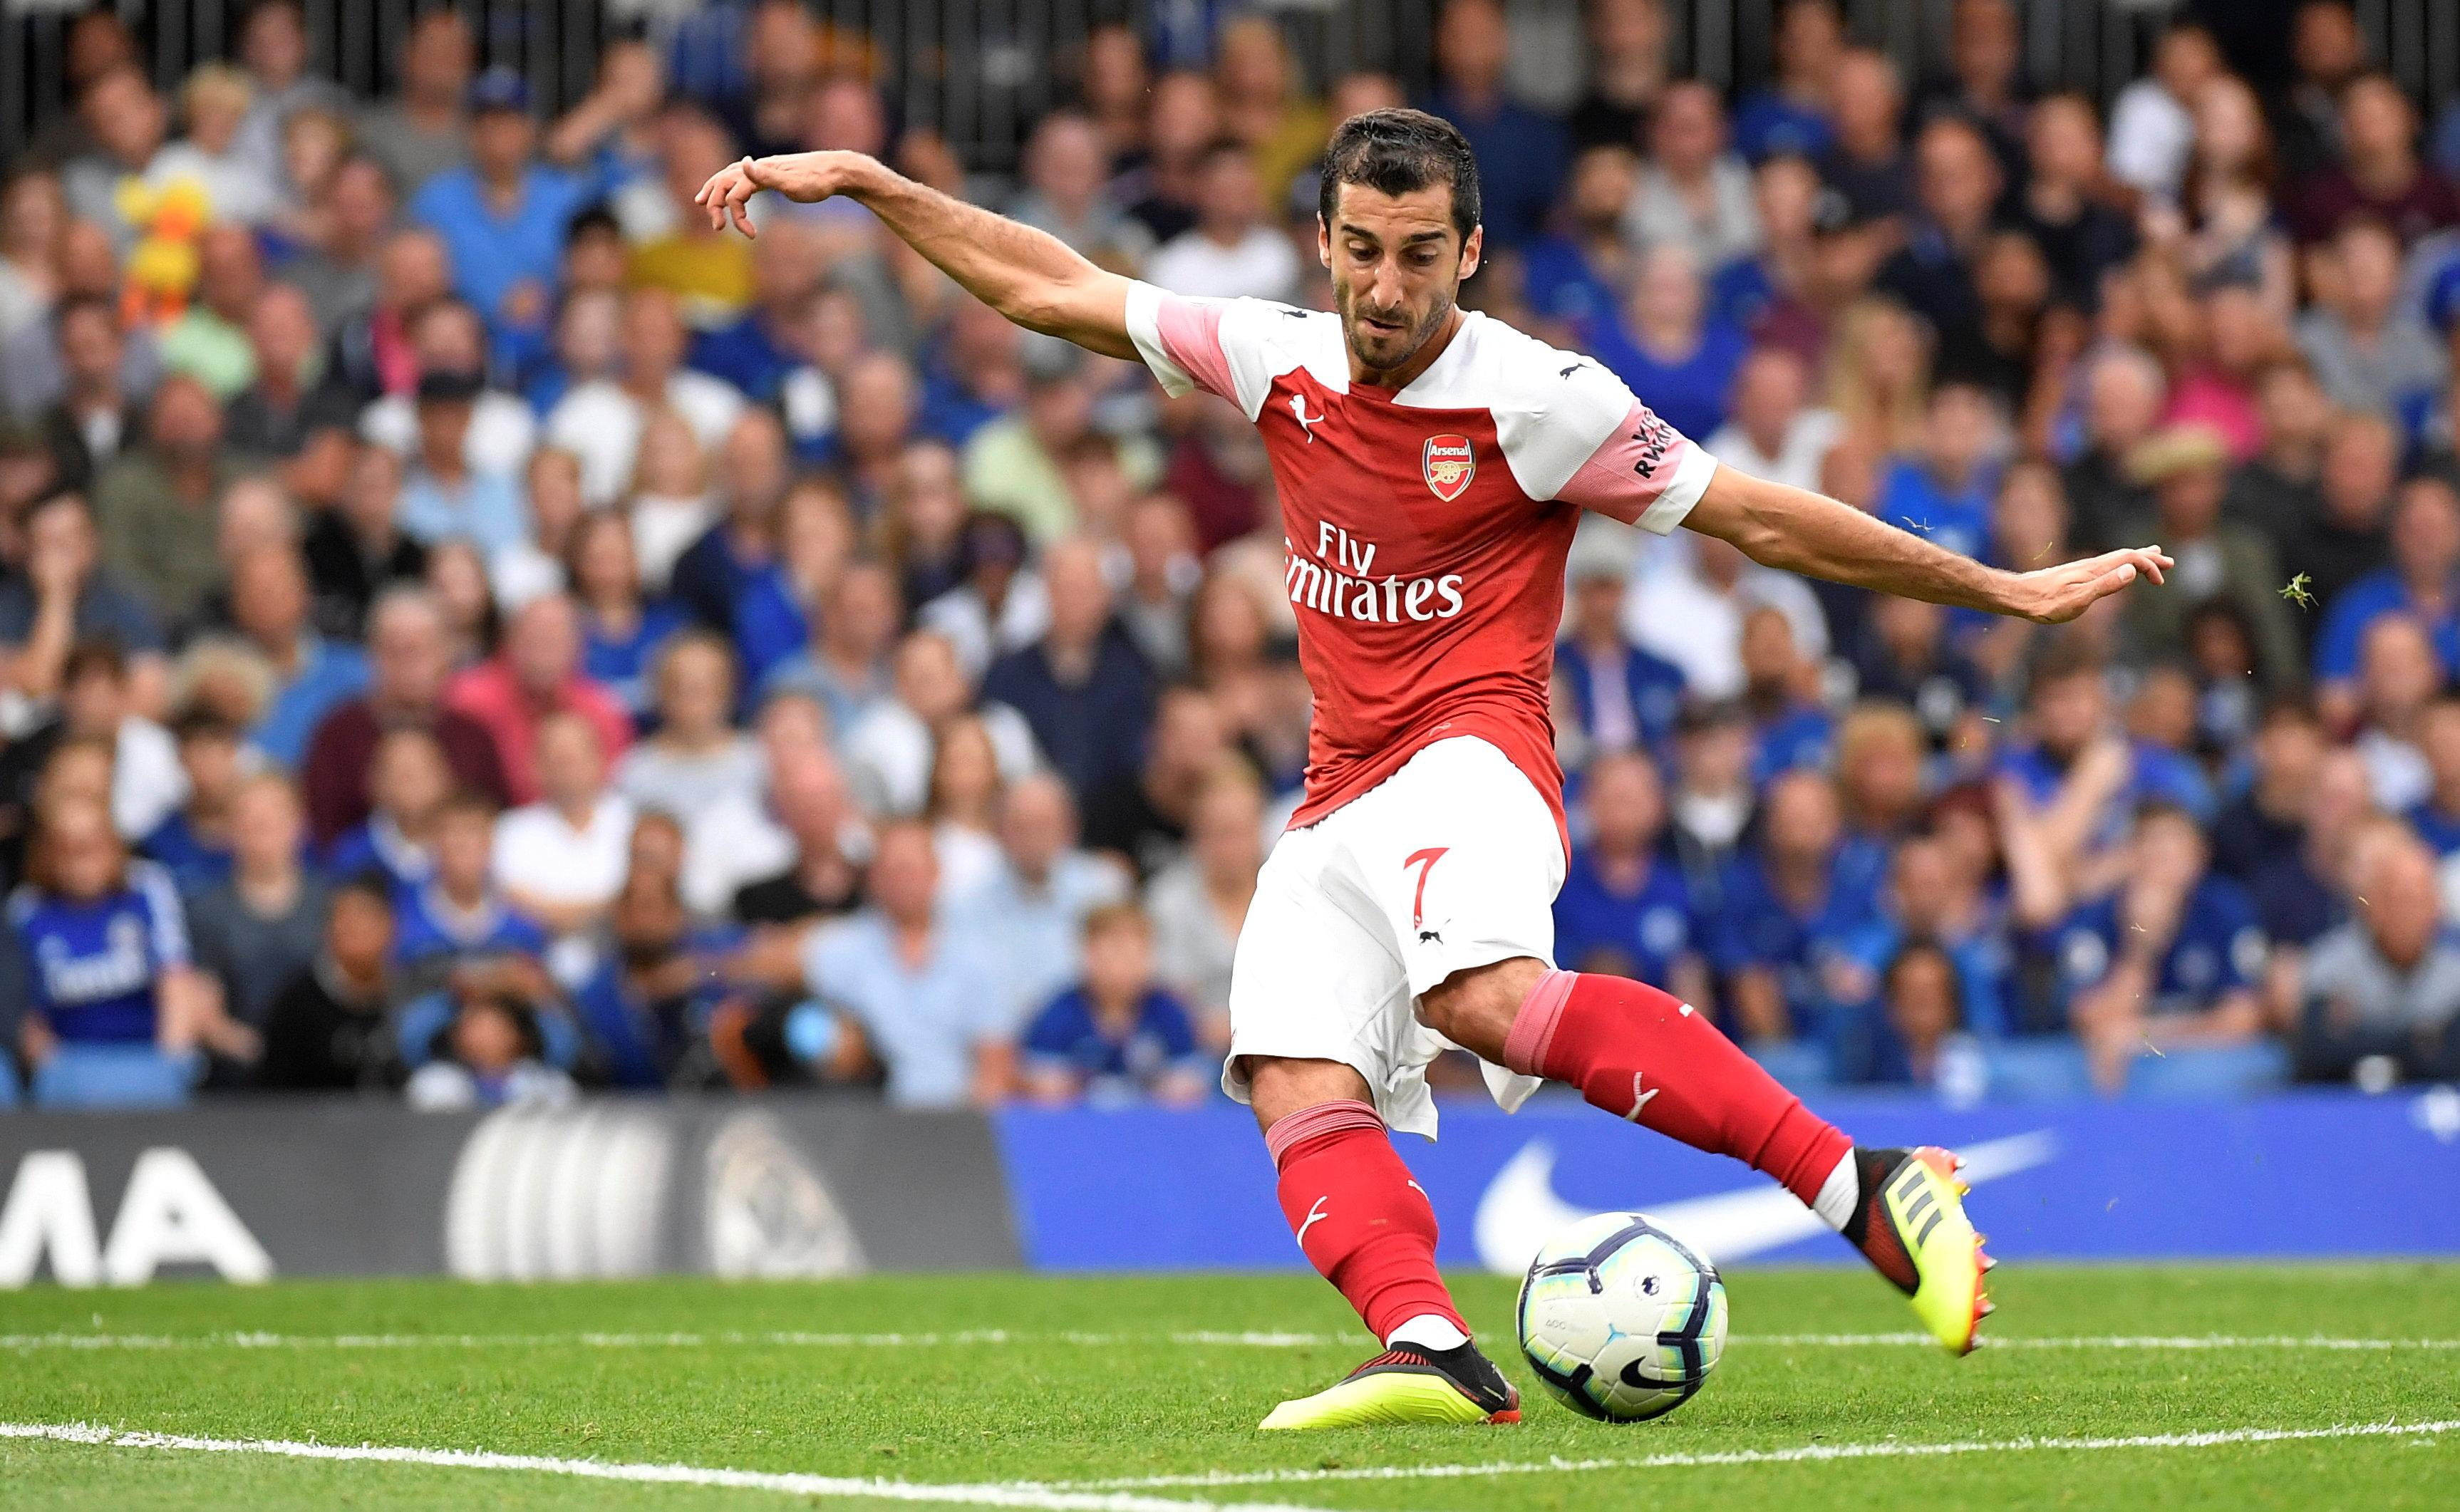 Mkhitaryan has featured in all of Arsenal's Premier League game so far